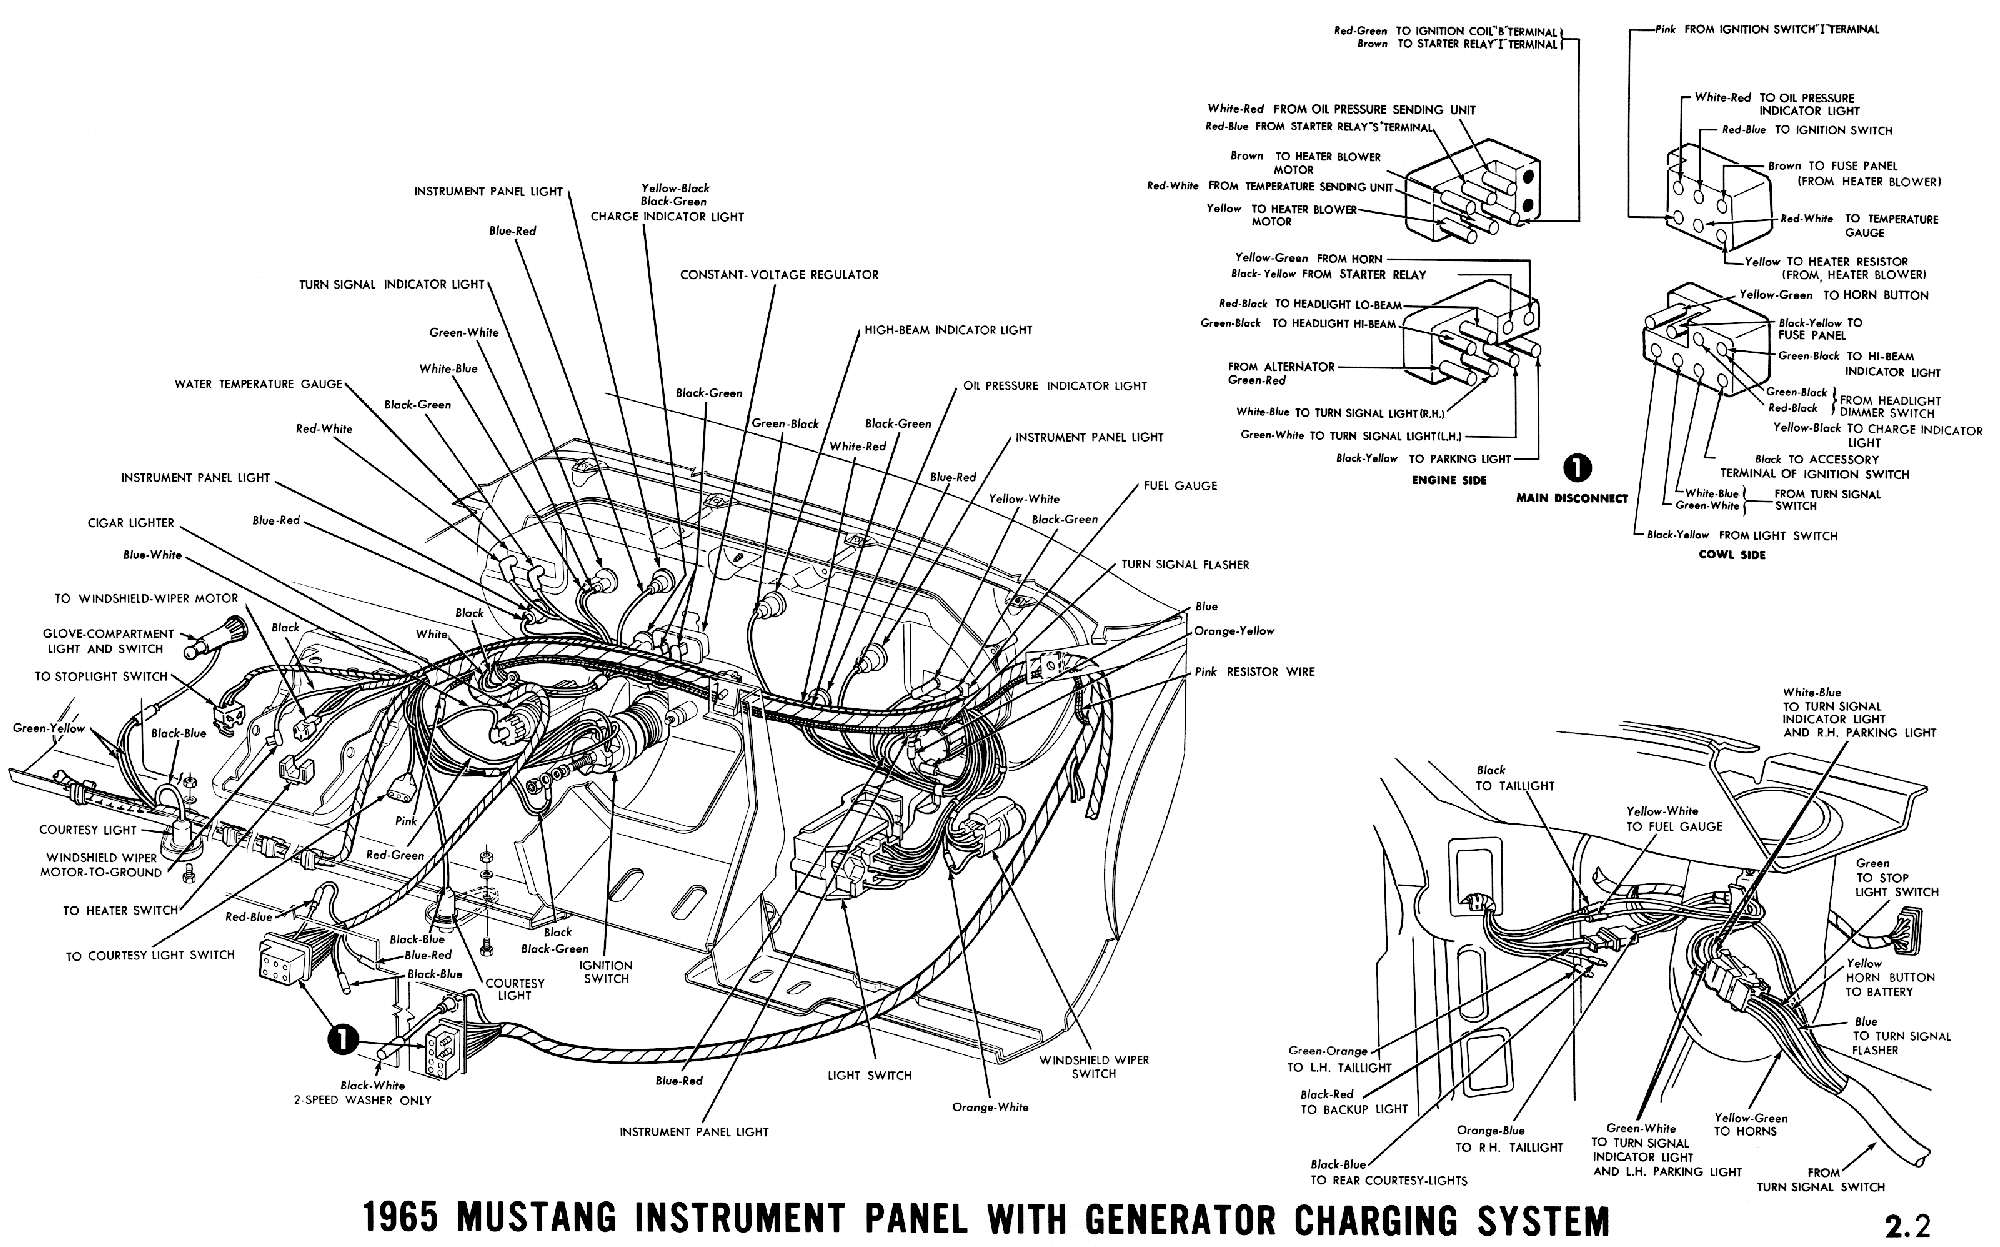 hight resolution of 1965 mustang wiring diagrams average joe restoration 1965 mustang fuse box wiring diagram 65 mustang fuse box wiring